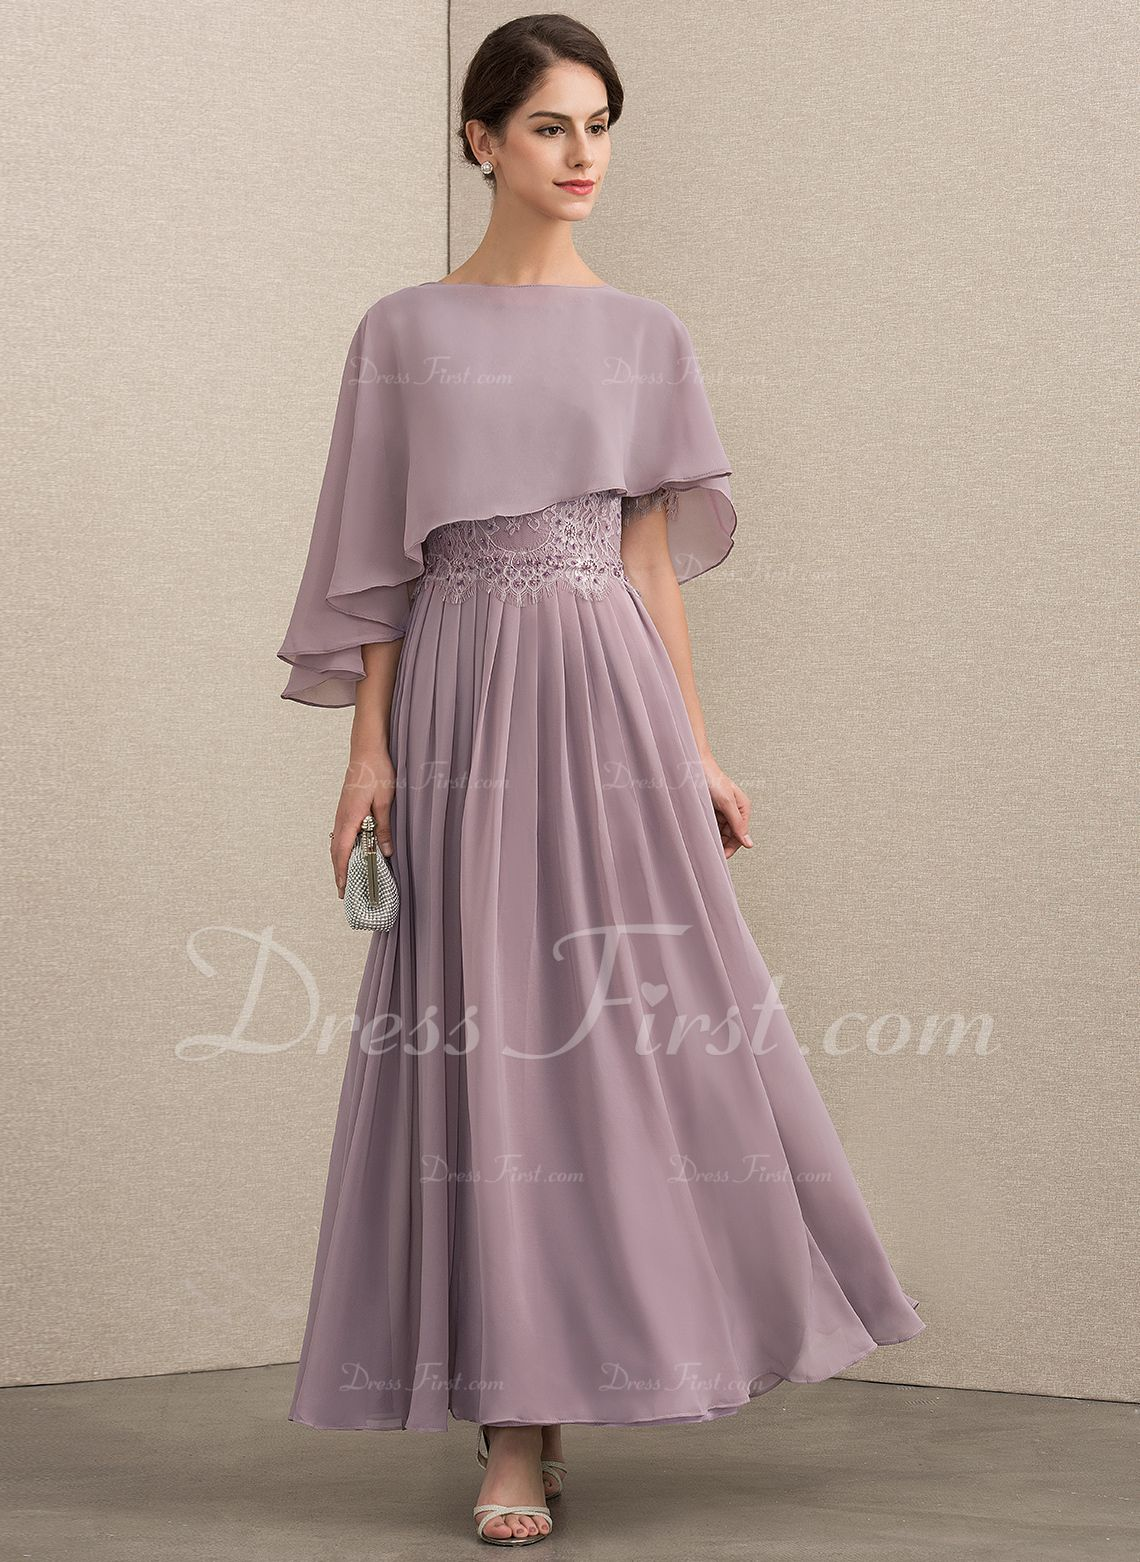 A Line Scoop Neck Ankle Length Chiffon Lace Mother Of The Bride Dress With Beading Sequins 008152152 M Chiffon Lace Bride Dress Mother Of The Bride Dresses